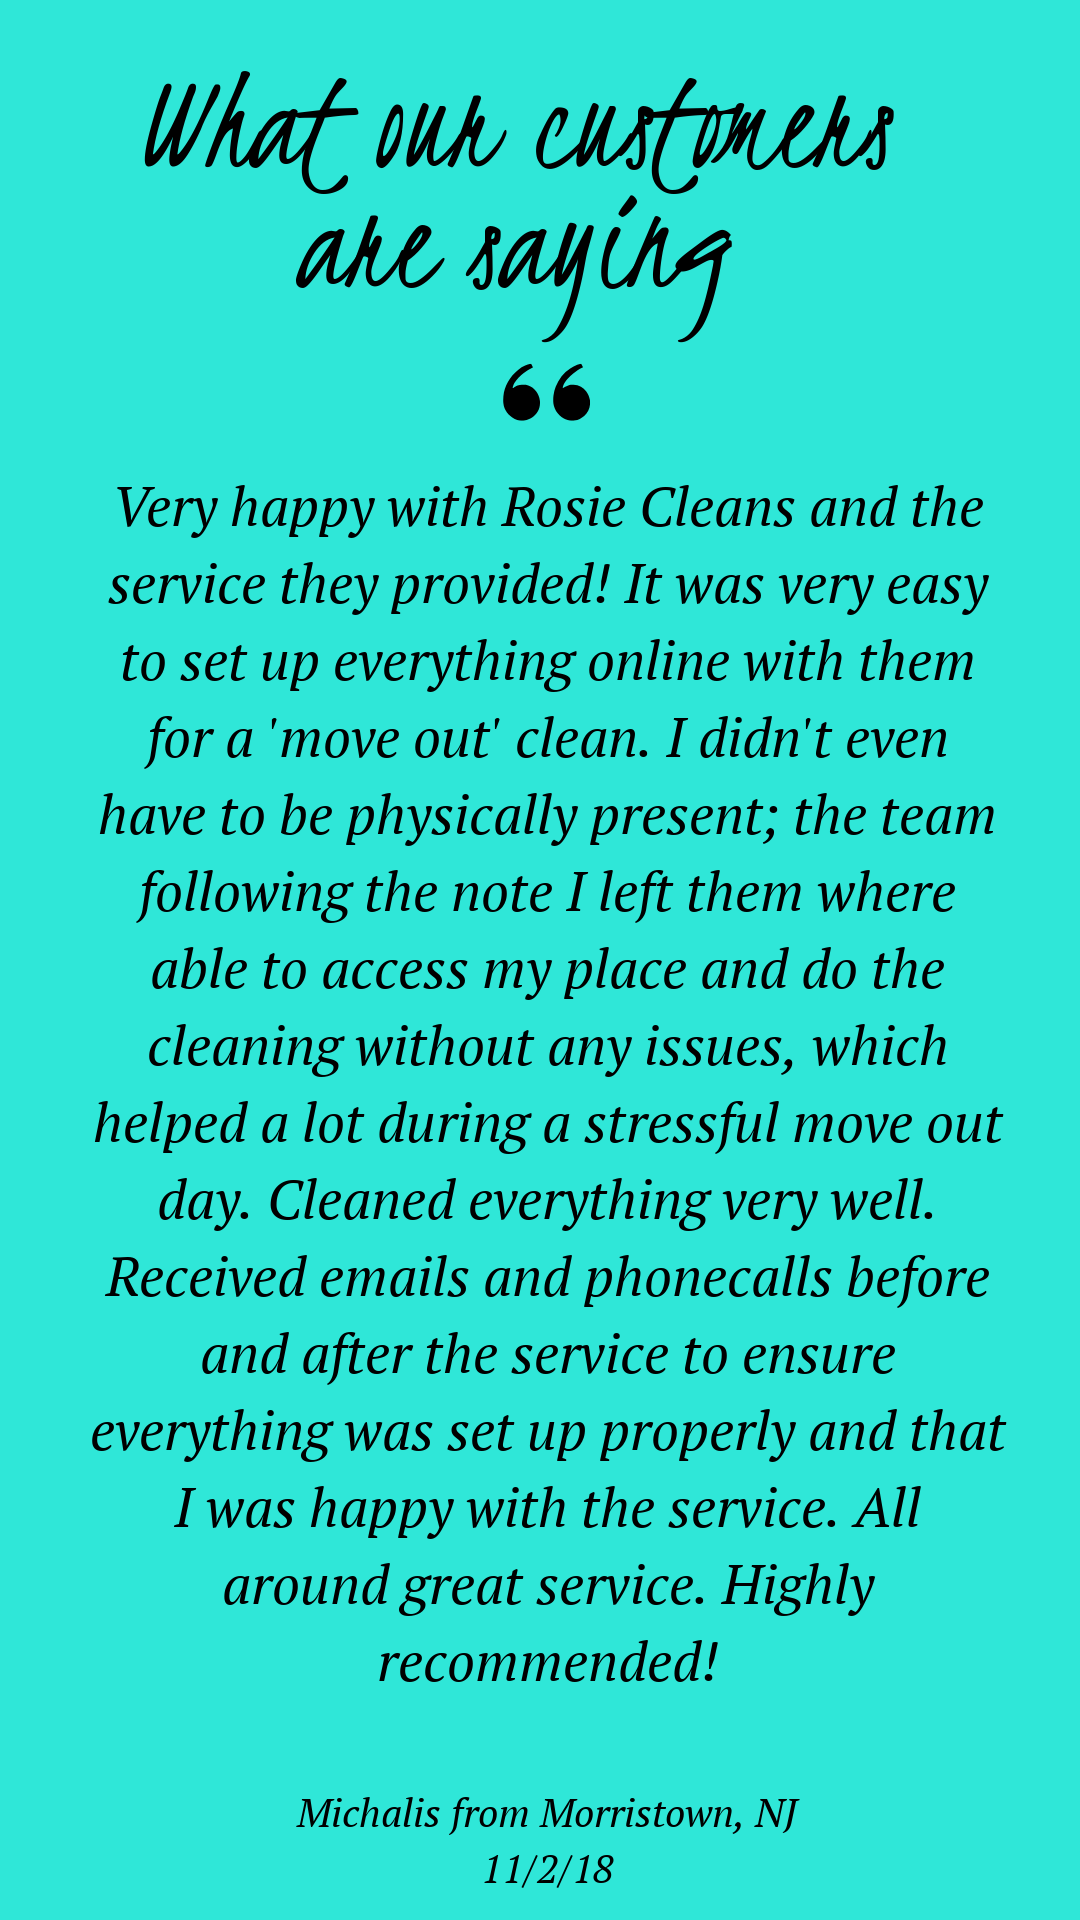 Rosie Cleans Morris County Cleaning